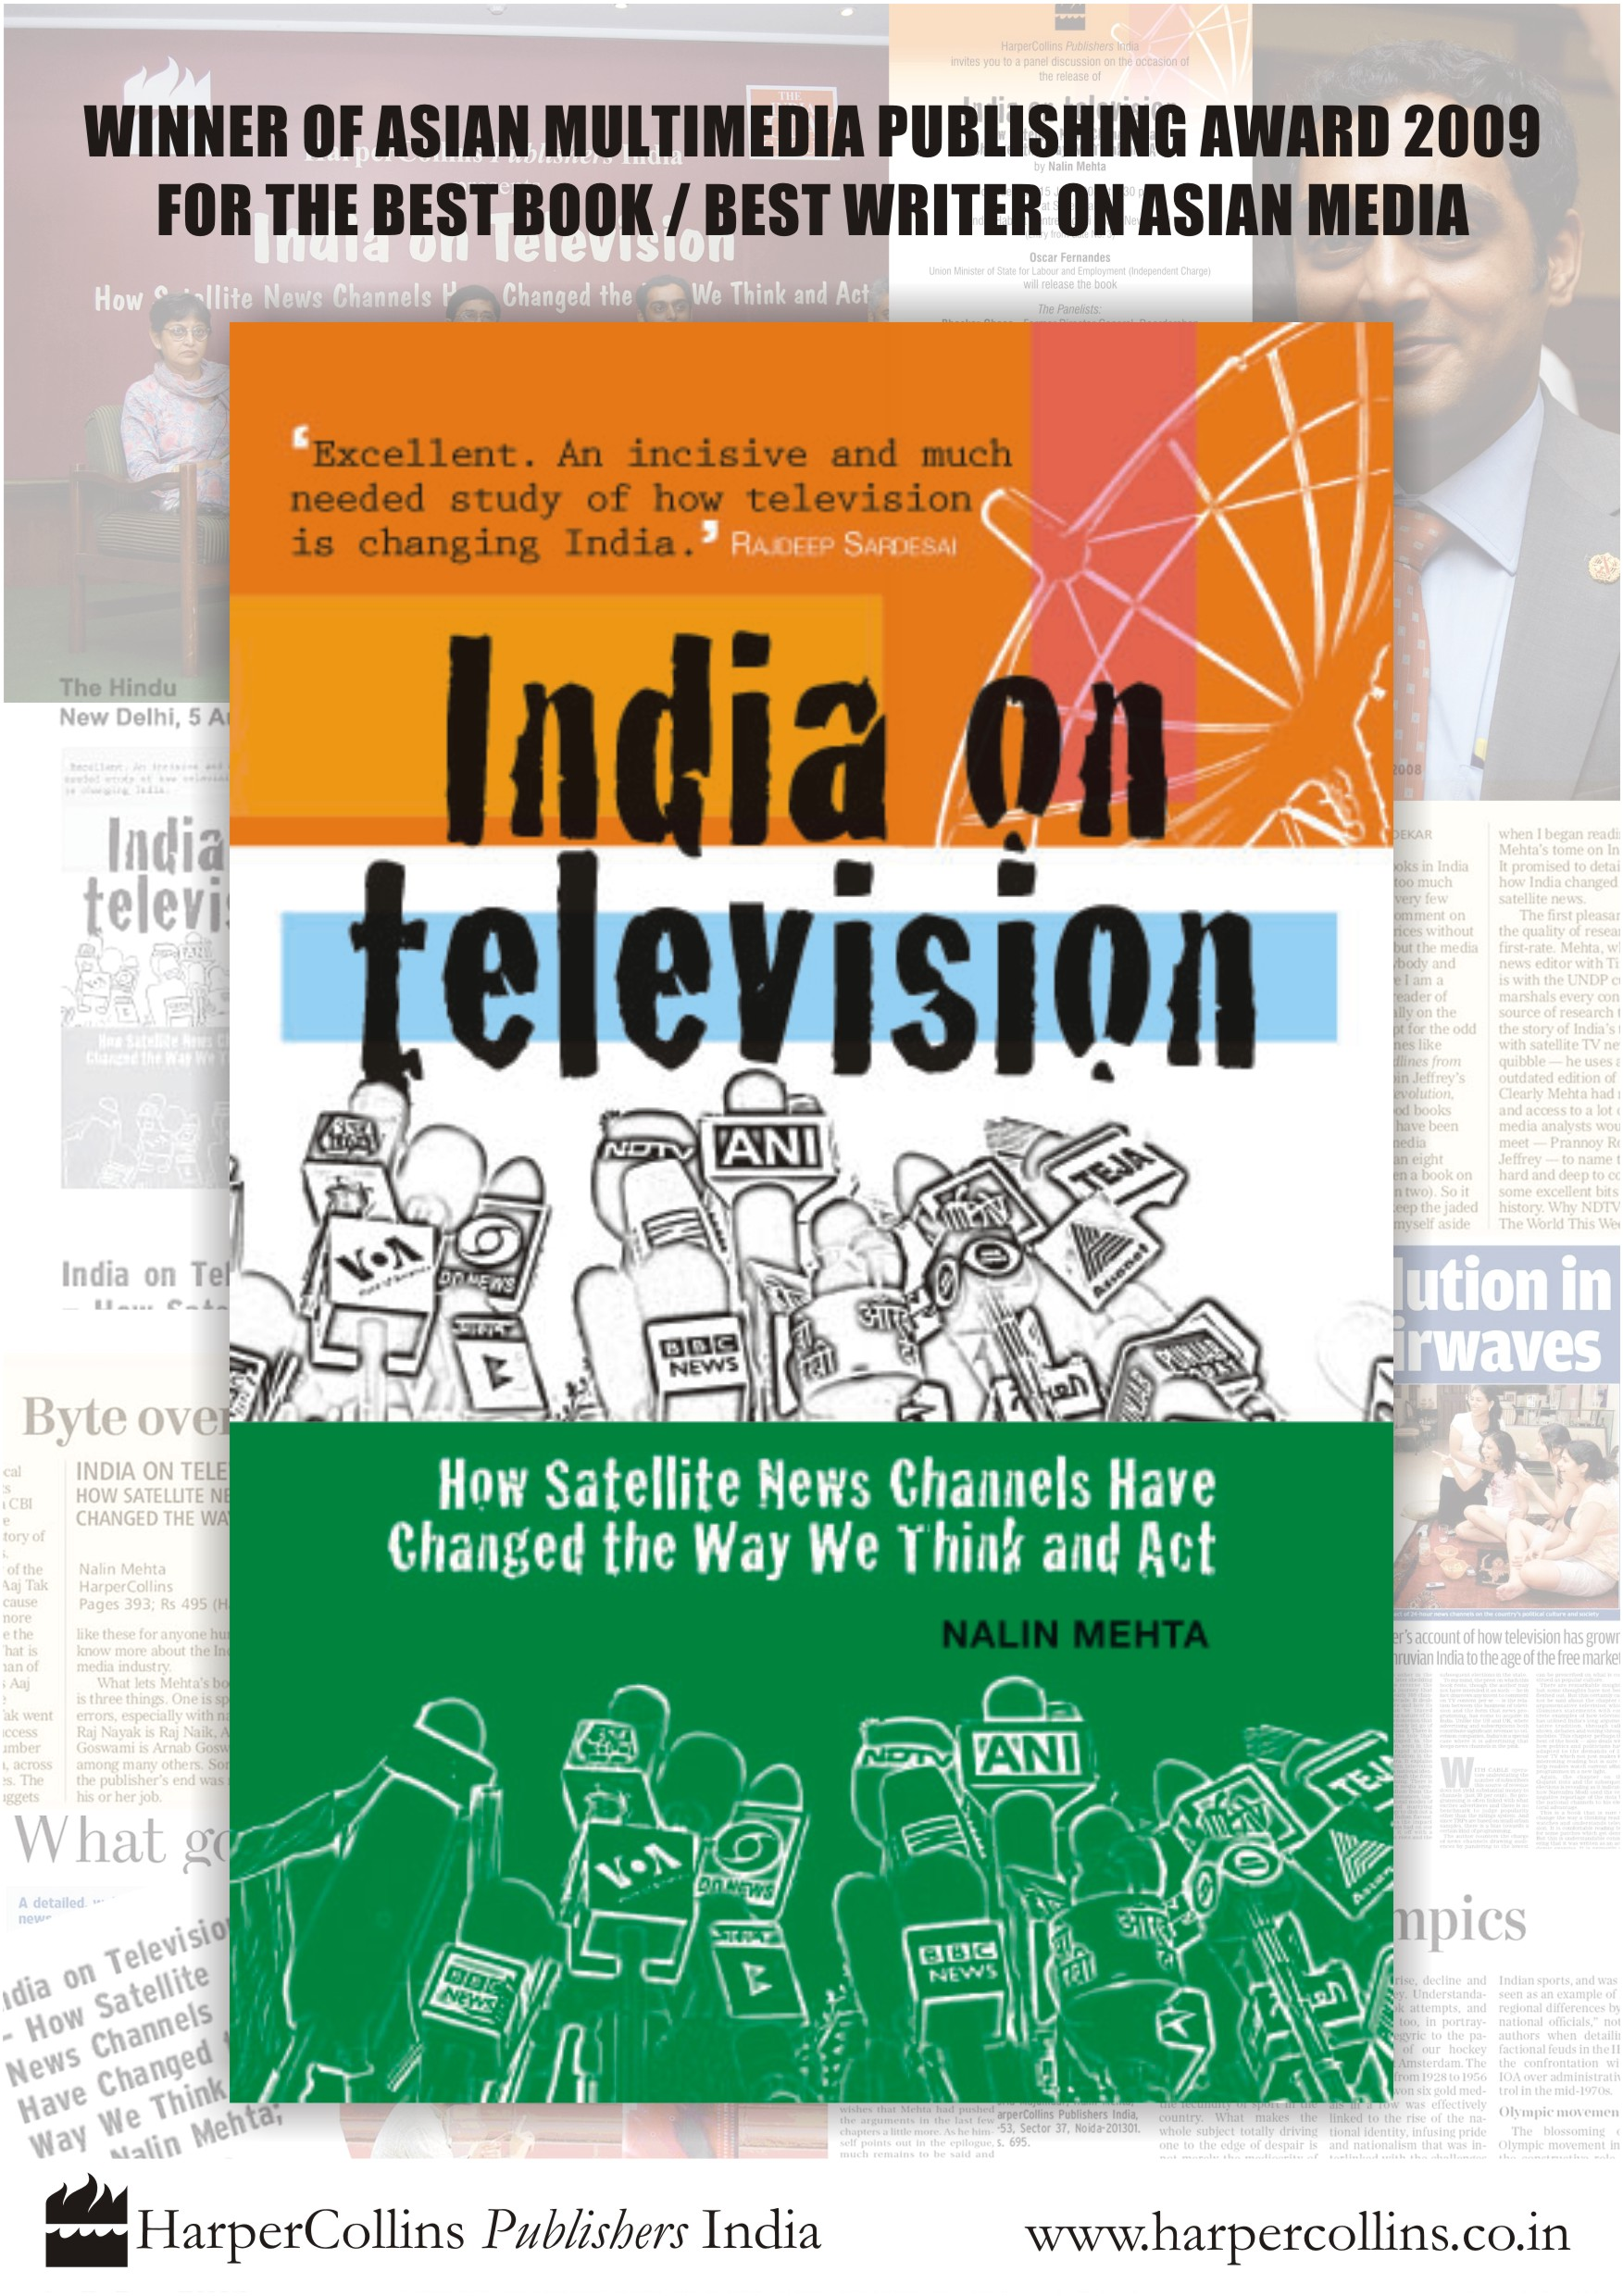 India on Television: How Satellite News Channels Changed the Way We Think and Act